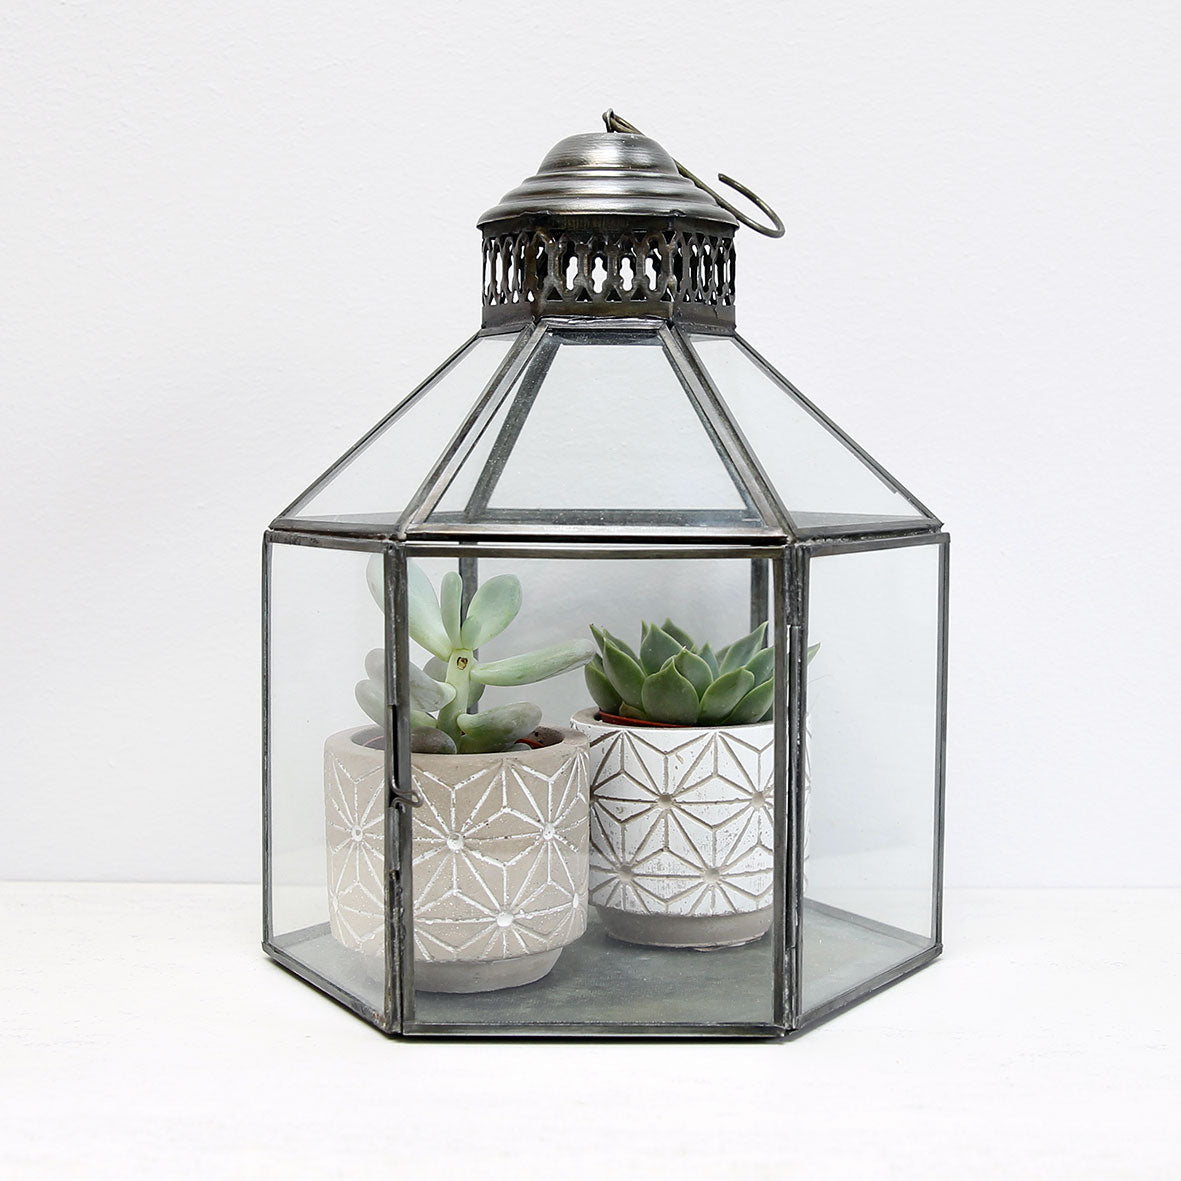 Hexagon zinc lantern